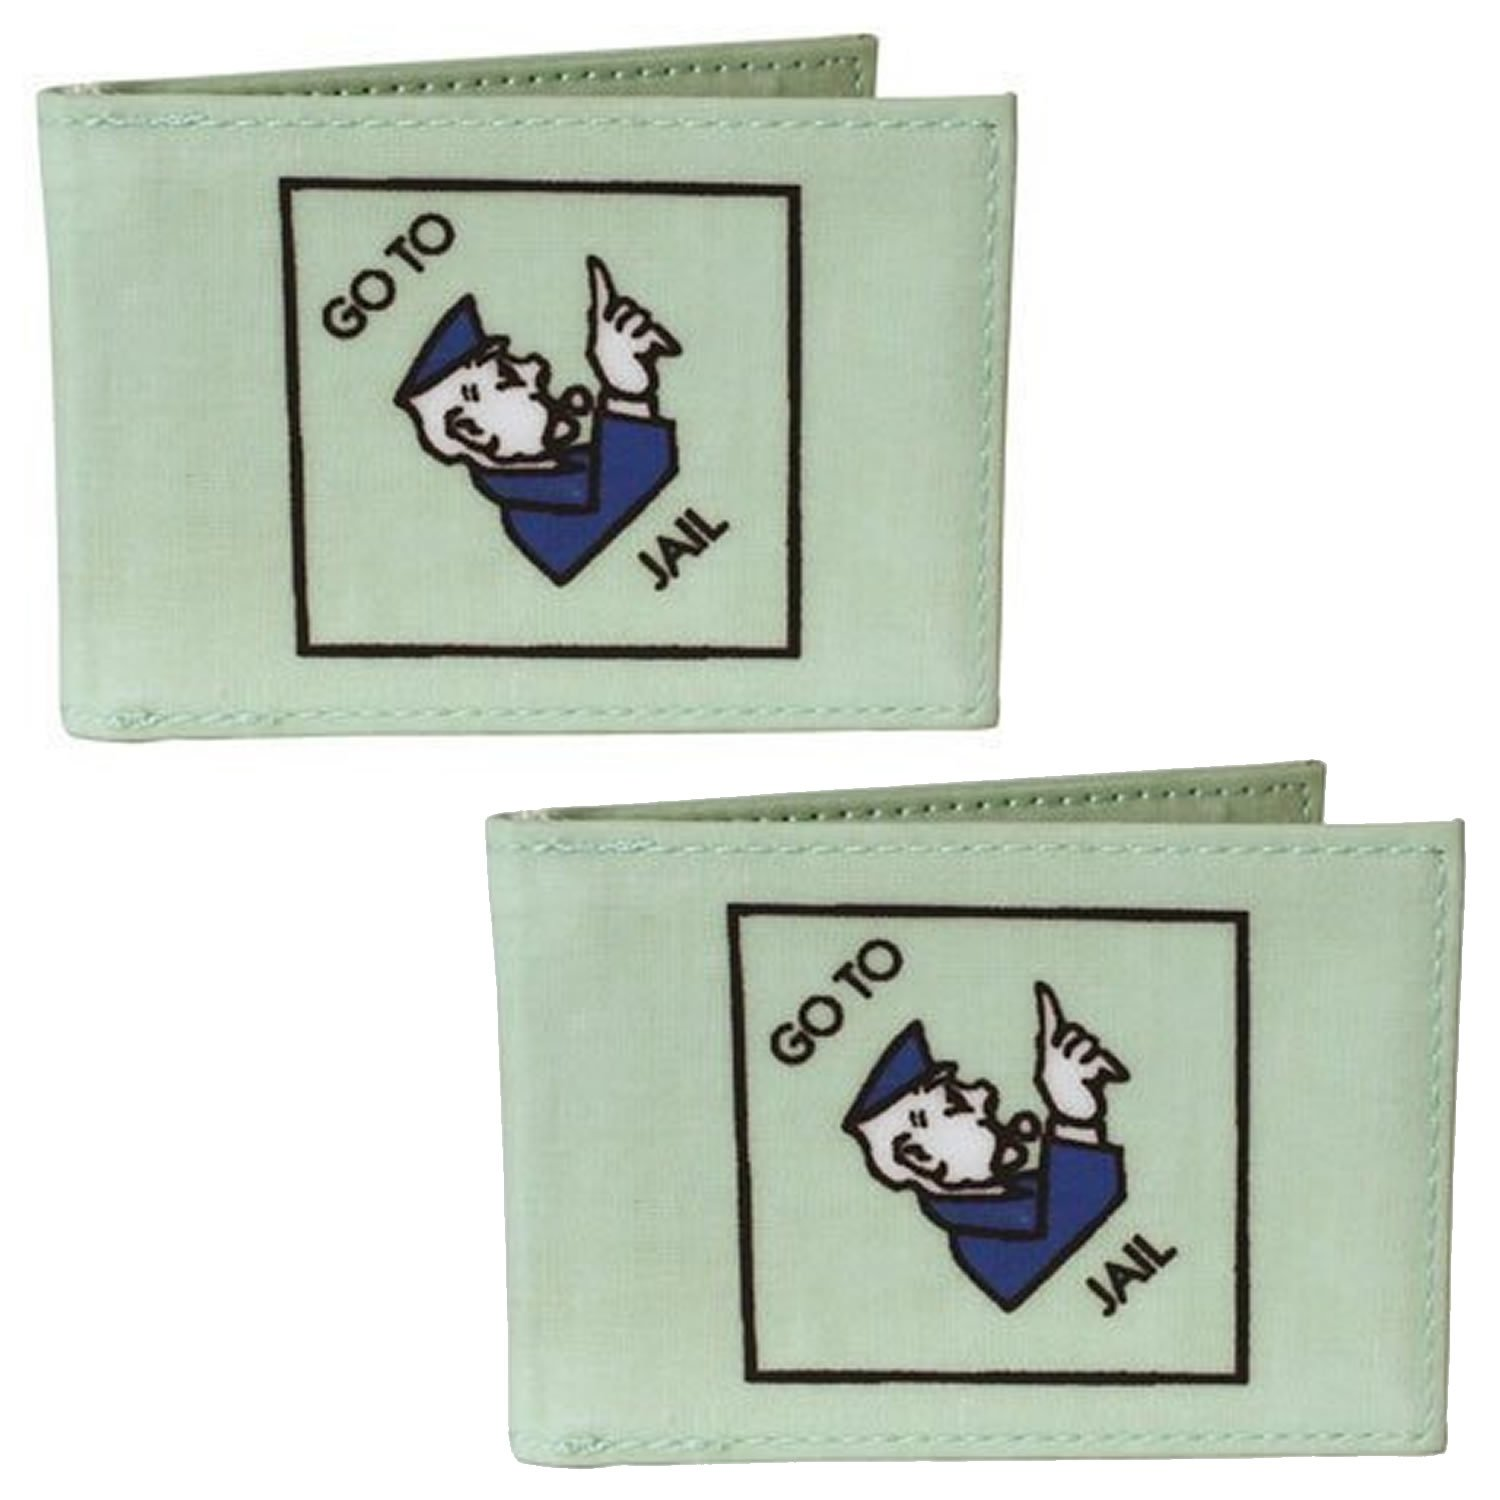 Monopoly Oyster Travel Pass Holder TWO PACK Retro Classic Design Go to Jail/Just Visiting and Pass Go/Free Parking Mens or Womens Waterproof Card Holder Wallets for Railcards, Bus Passes or Student ID